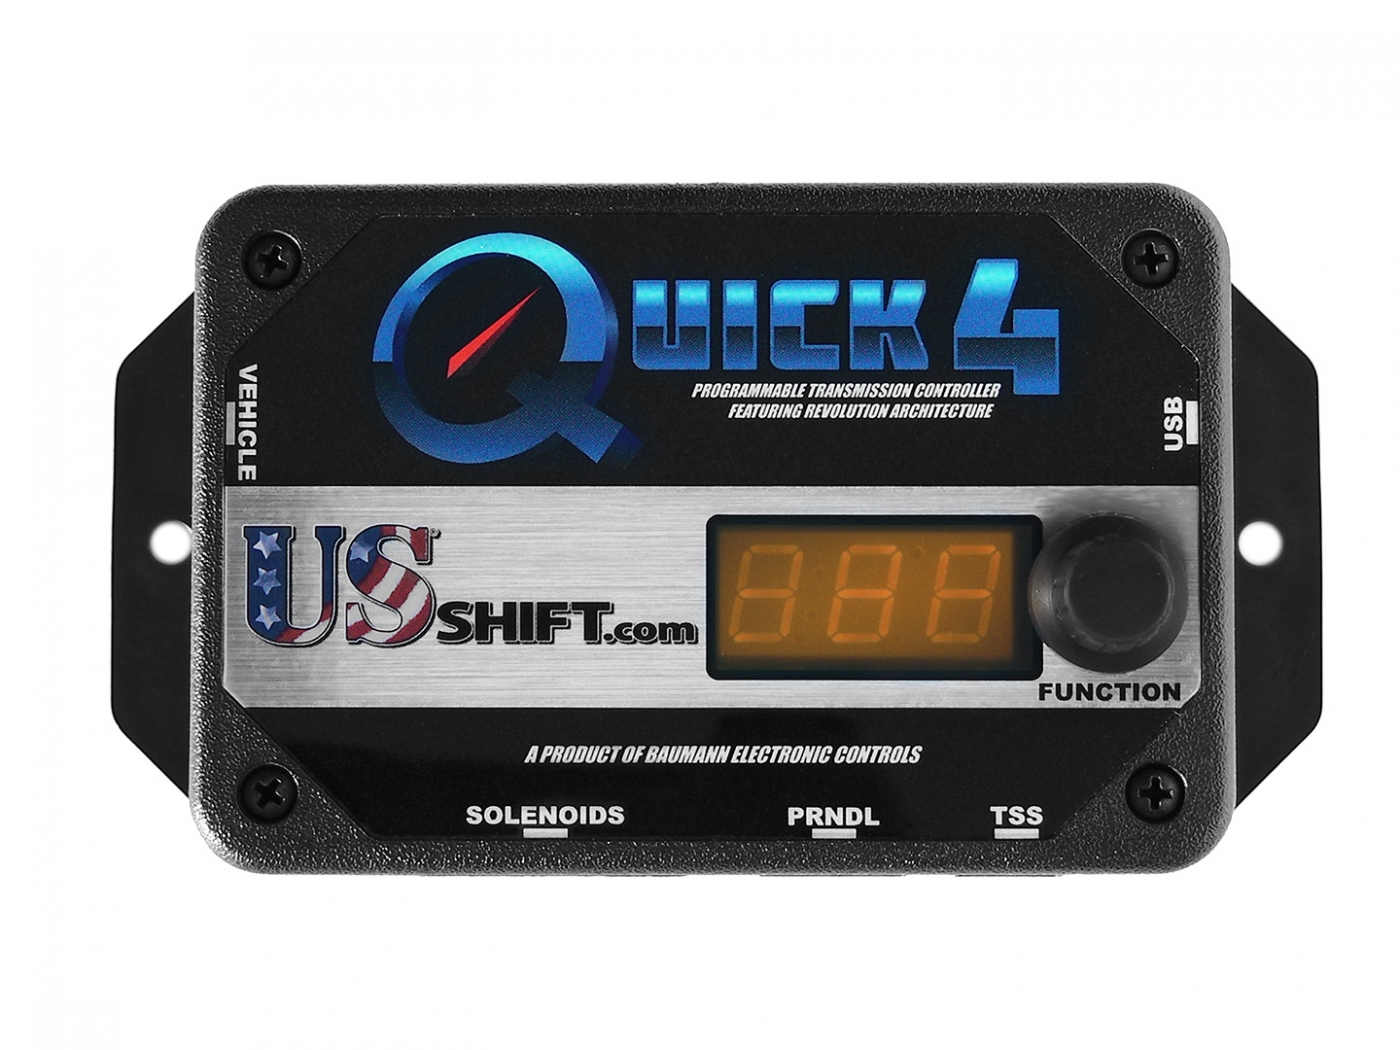 The Quick 4 Transmission Control System